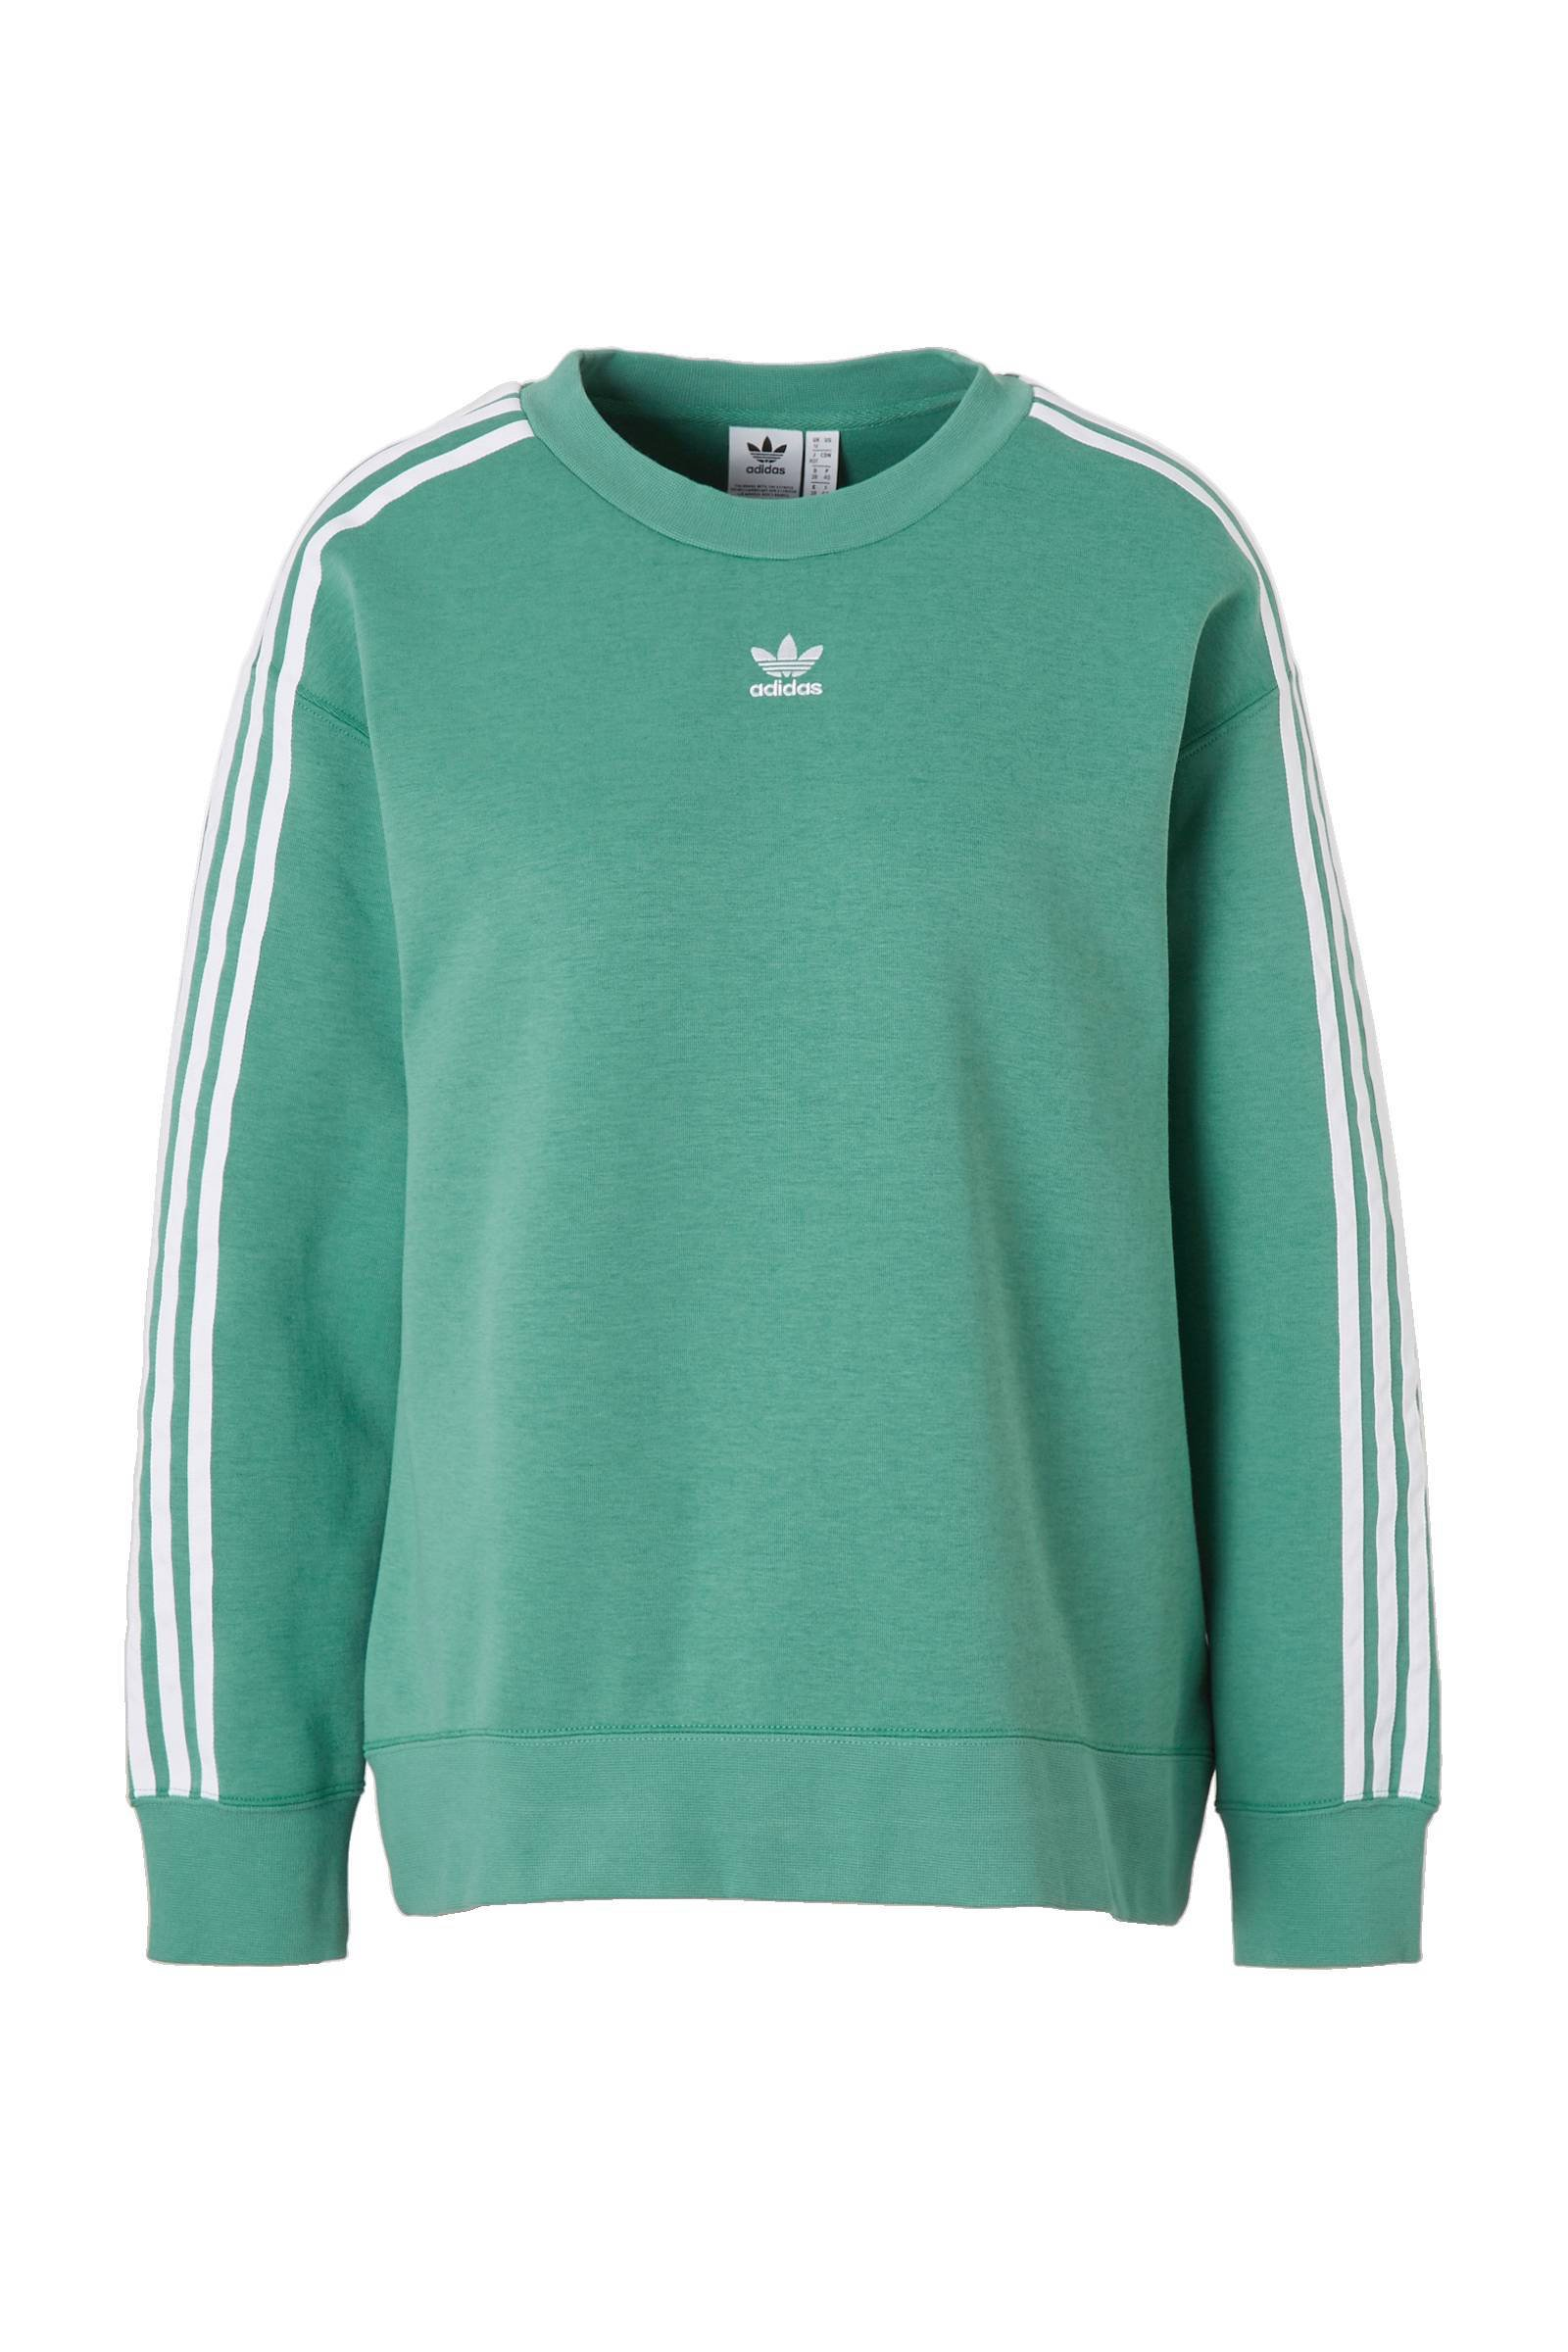 adidas originals adidas Originals sweater | wehkamp